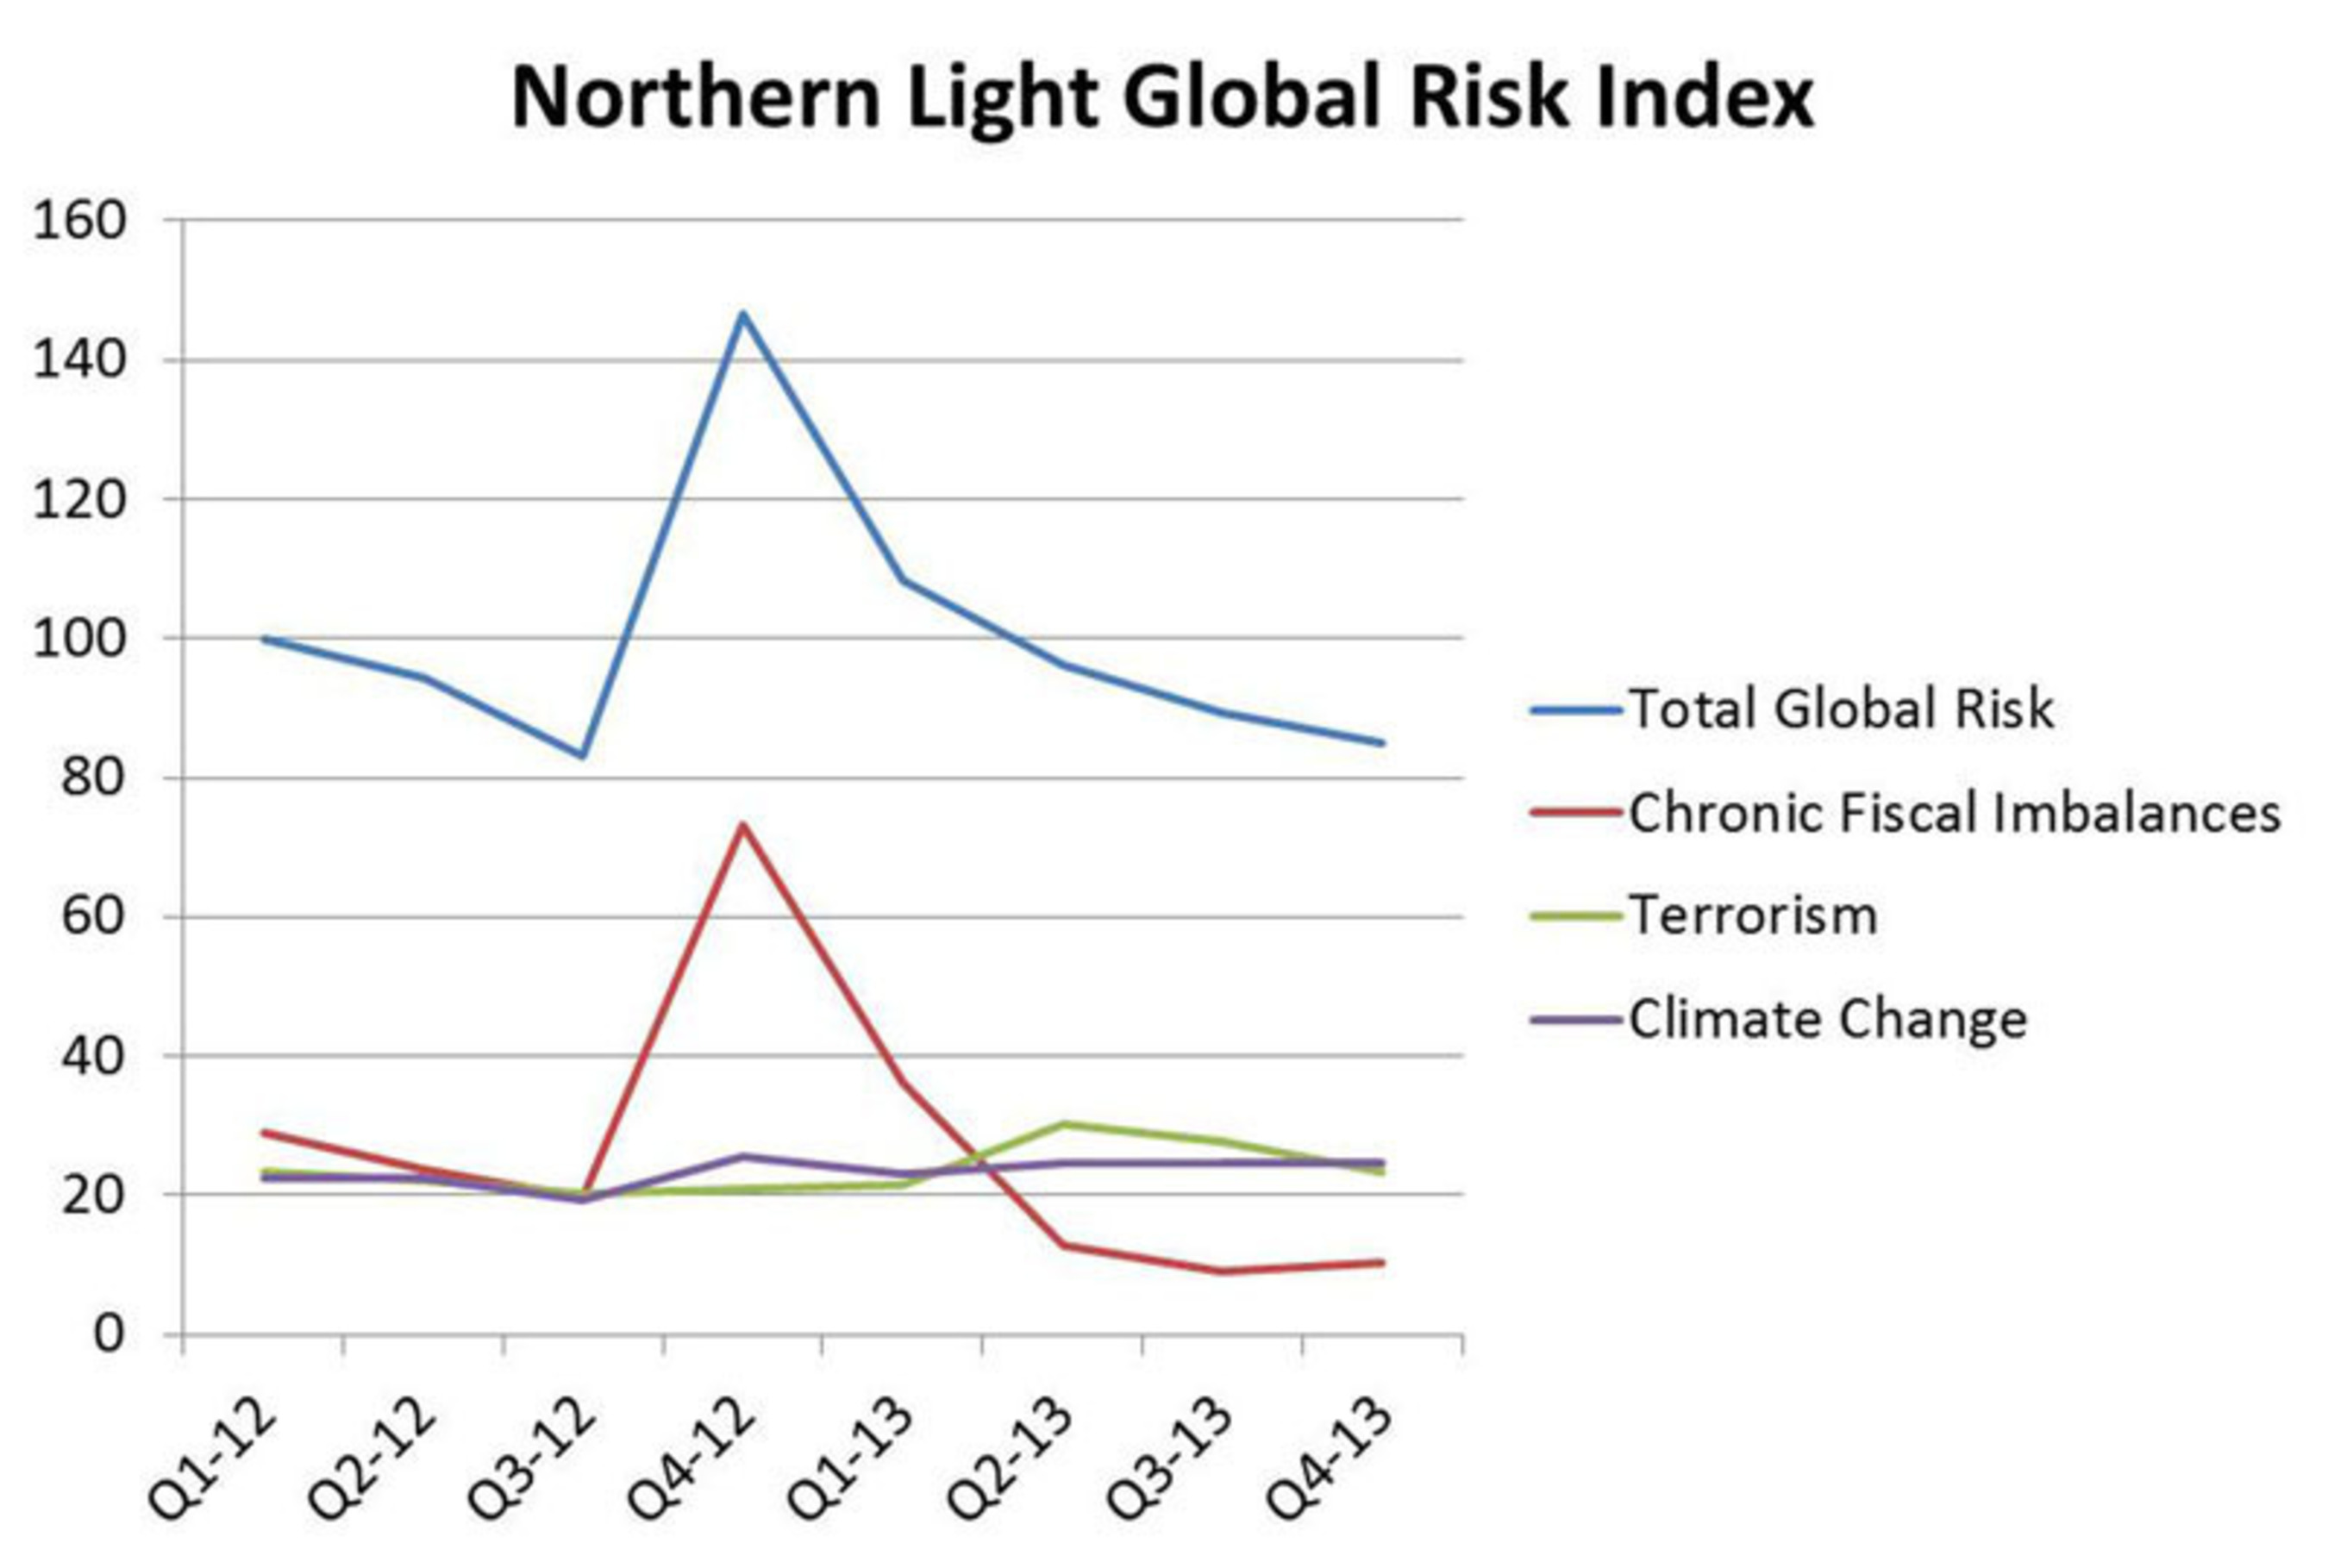 Northern Light's Global Risk Index declined to 85 in Q4 2013 after peaking at 147 in Q4 2012.  (PRNewsFoto/Northern Light)